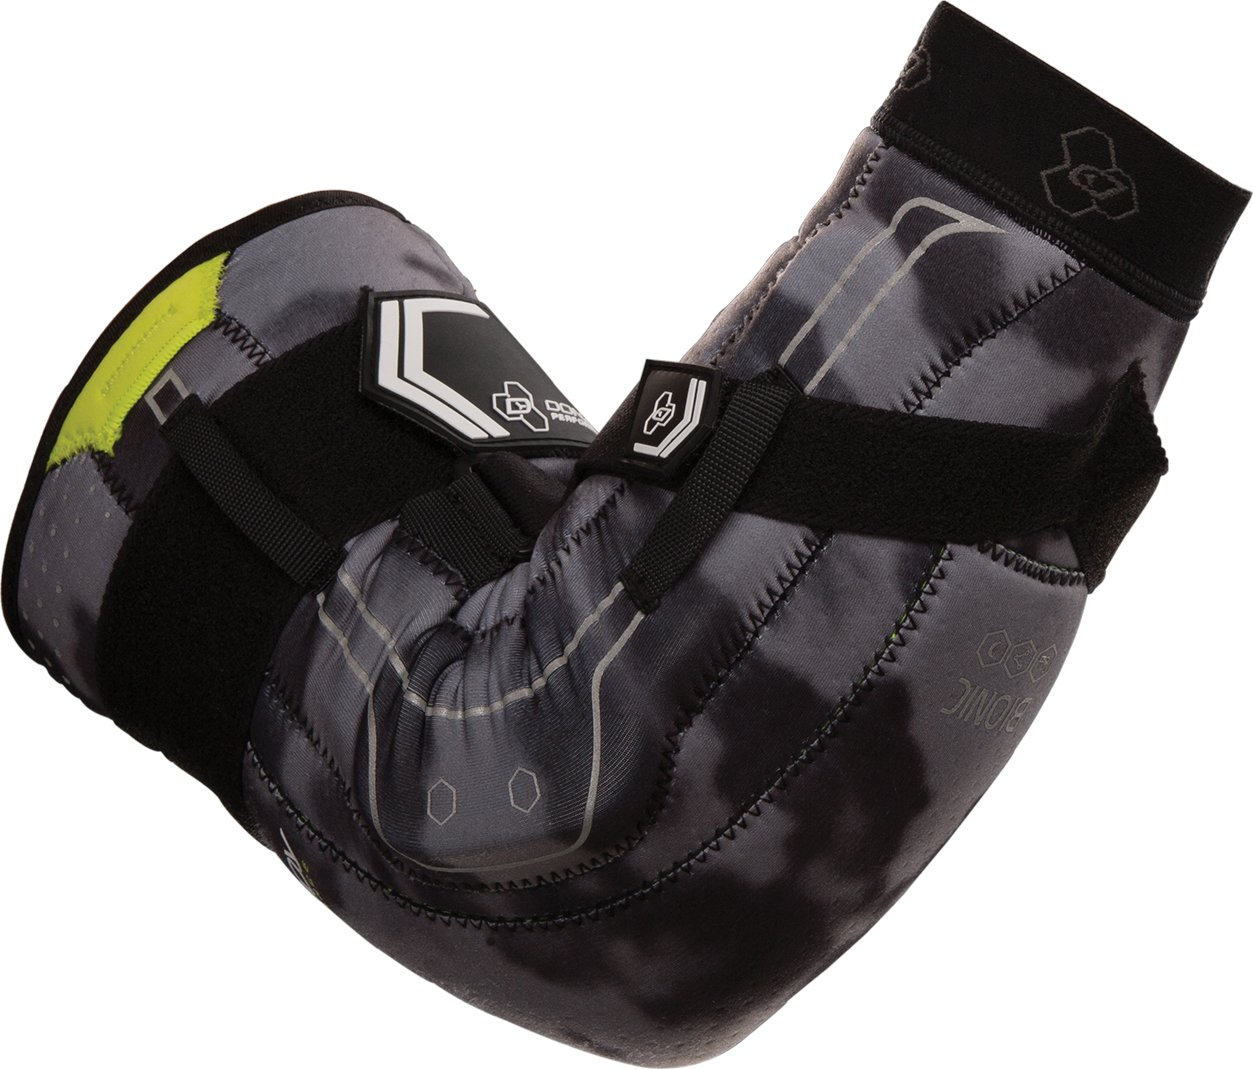 DonJoy Performance Bionic Elbow Brace – Maximum Hinged Support for Elbow Hyperextension, UCL, Tommy John Ligament Injury, Dislocated Elbow for Football, Lacrosse, Rugby, Basketball